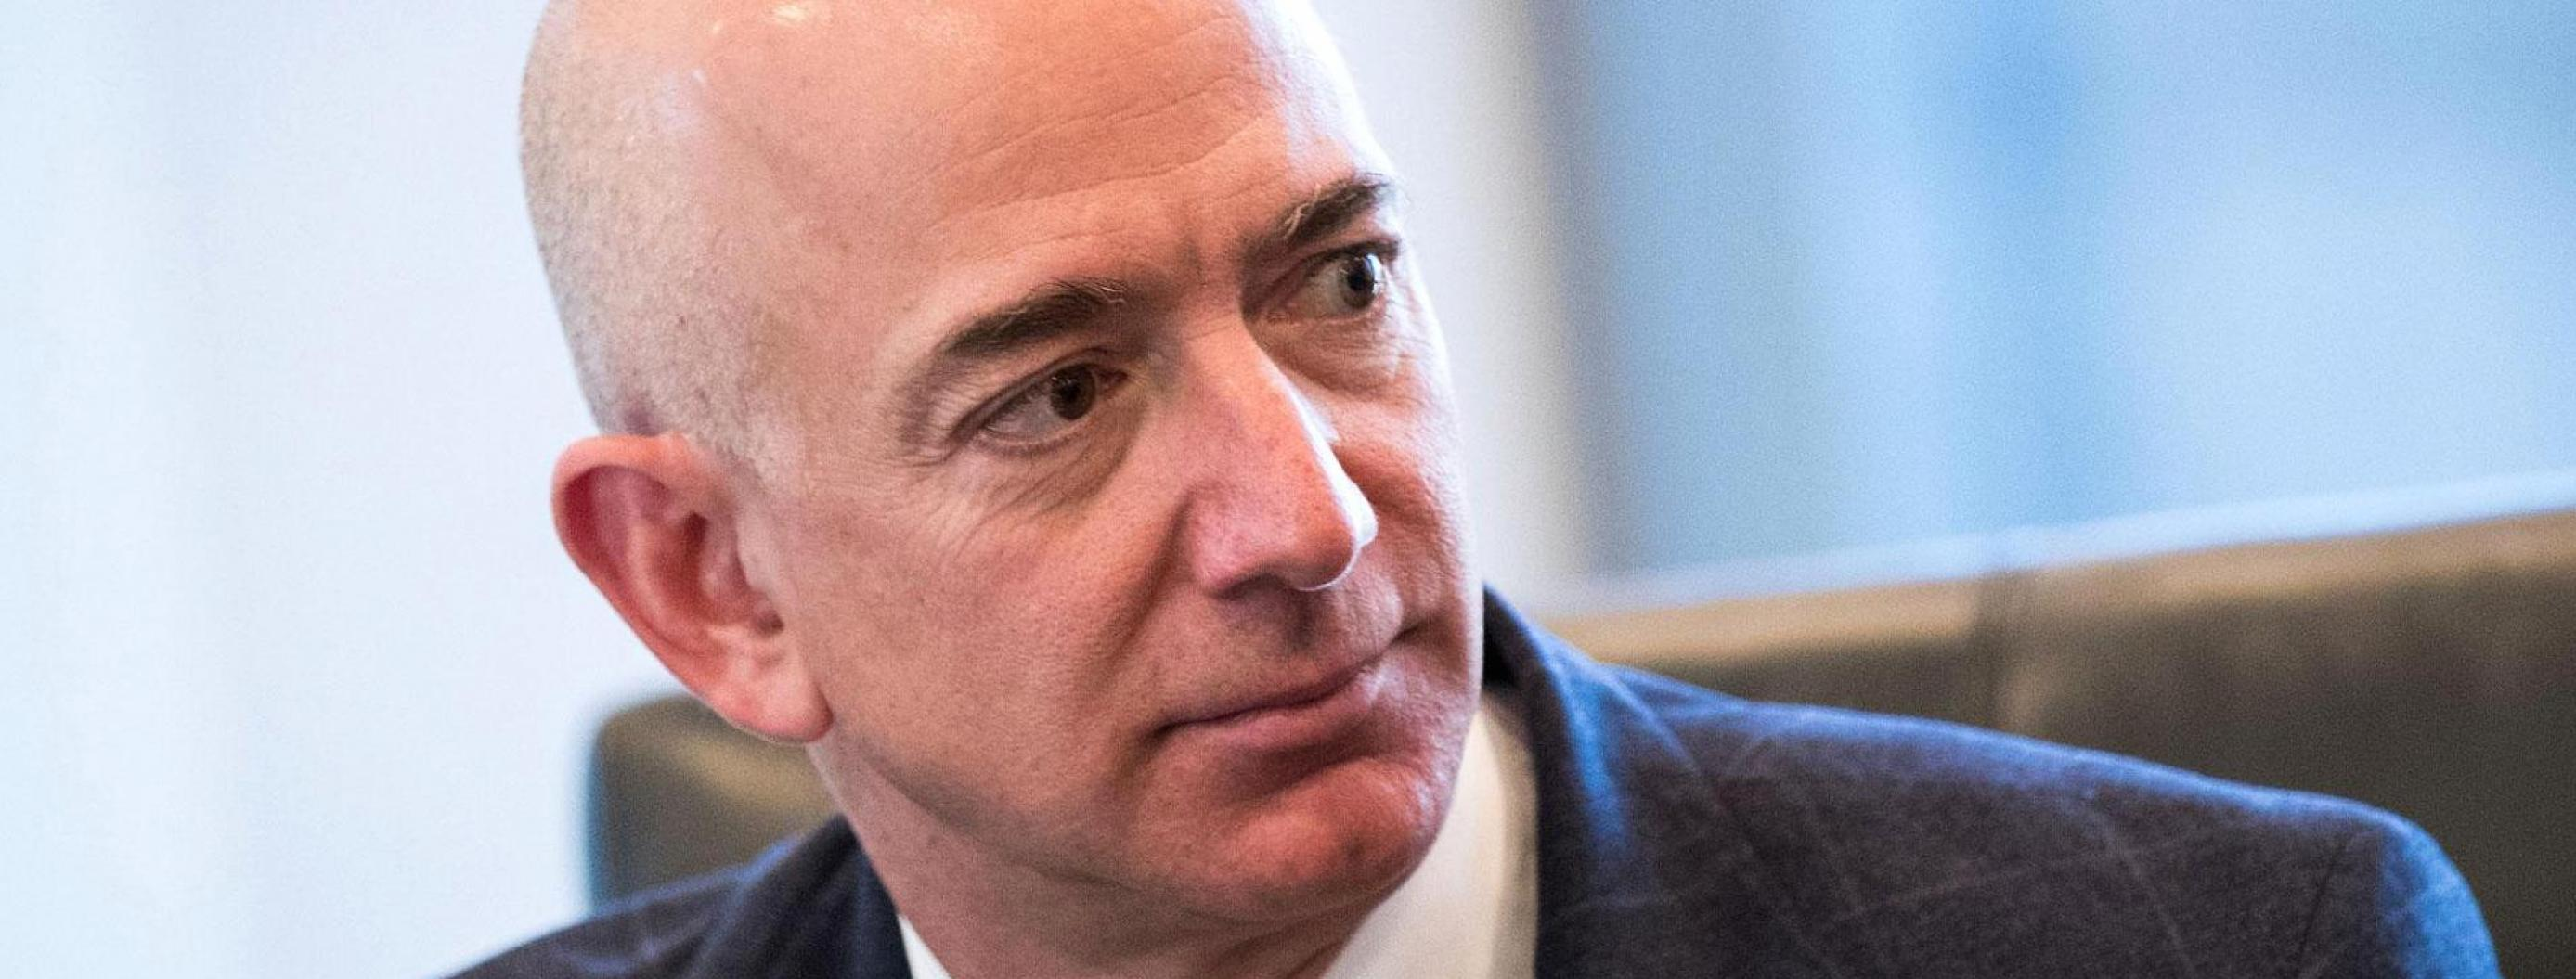 How Amazon's CEO Became One of The World's Richest People